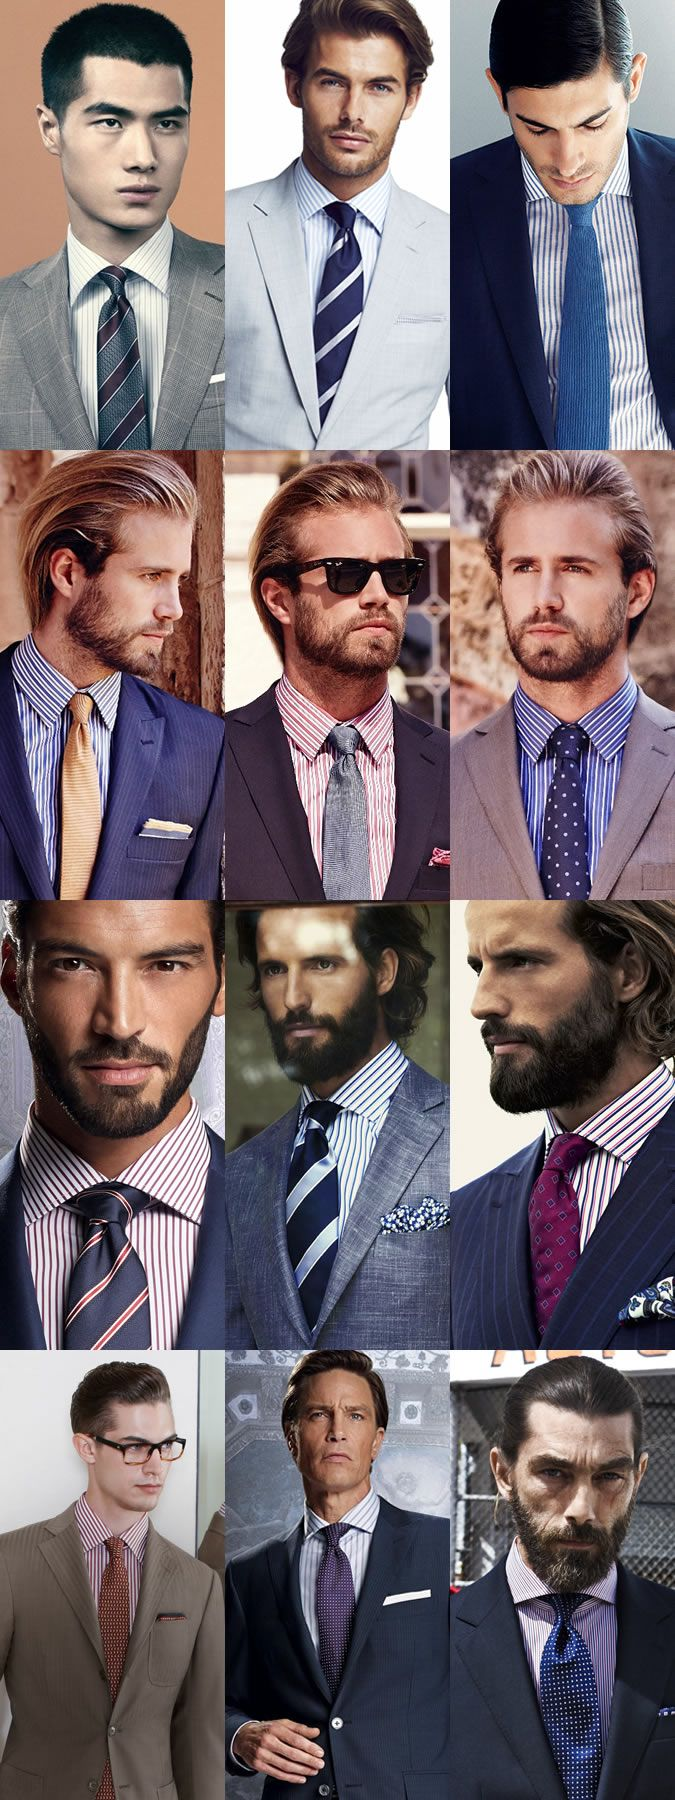 68fb16578f4 Men s Striped Shirts and Tie Combinations Lookbook from fashionbeans ...